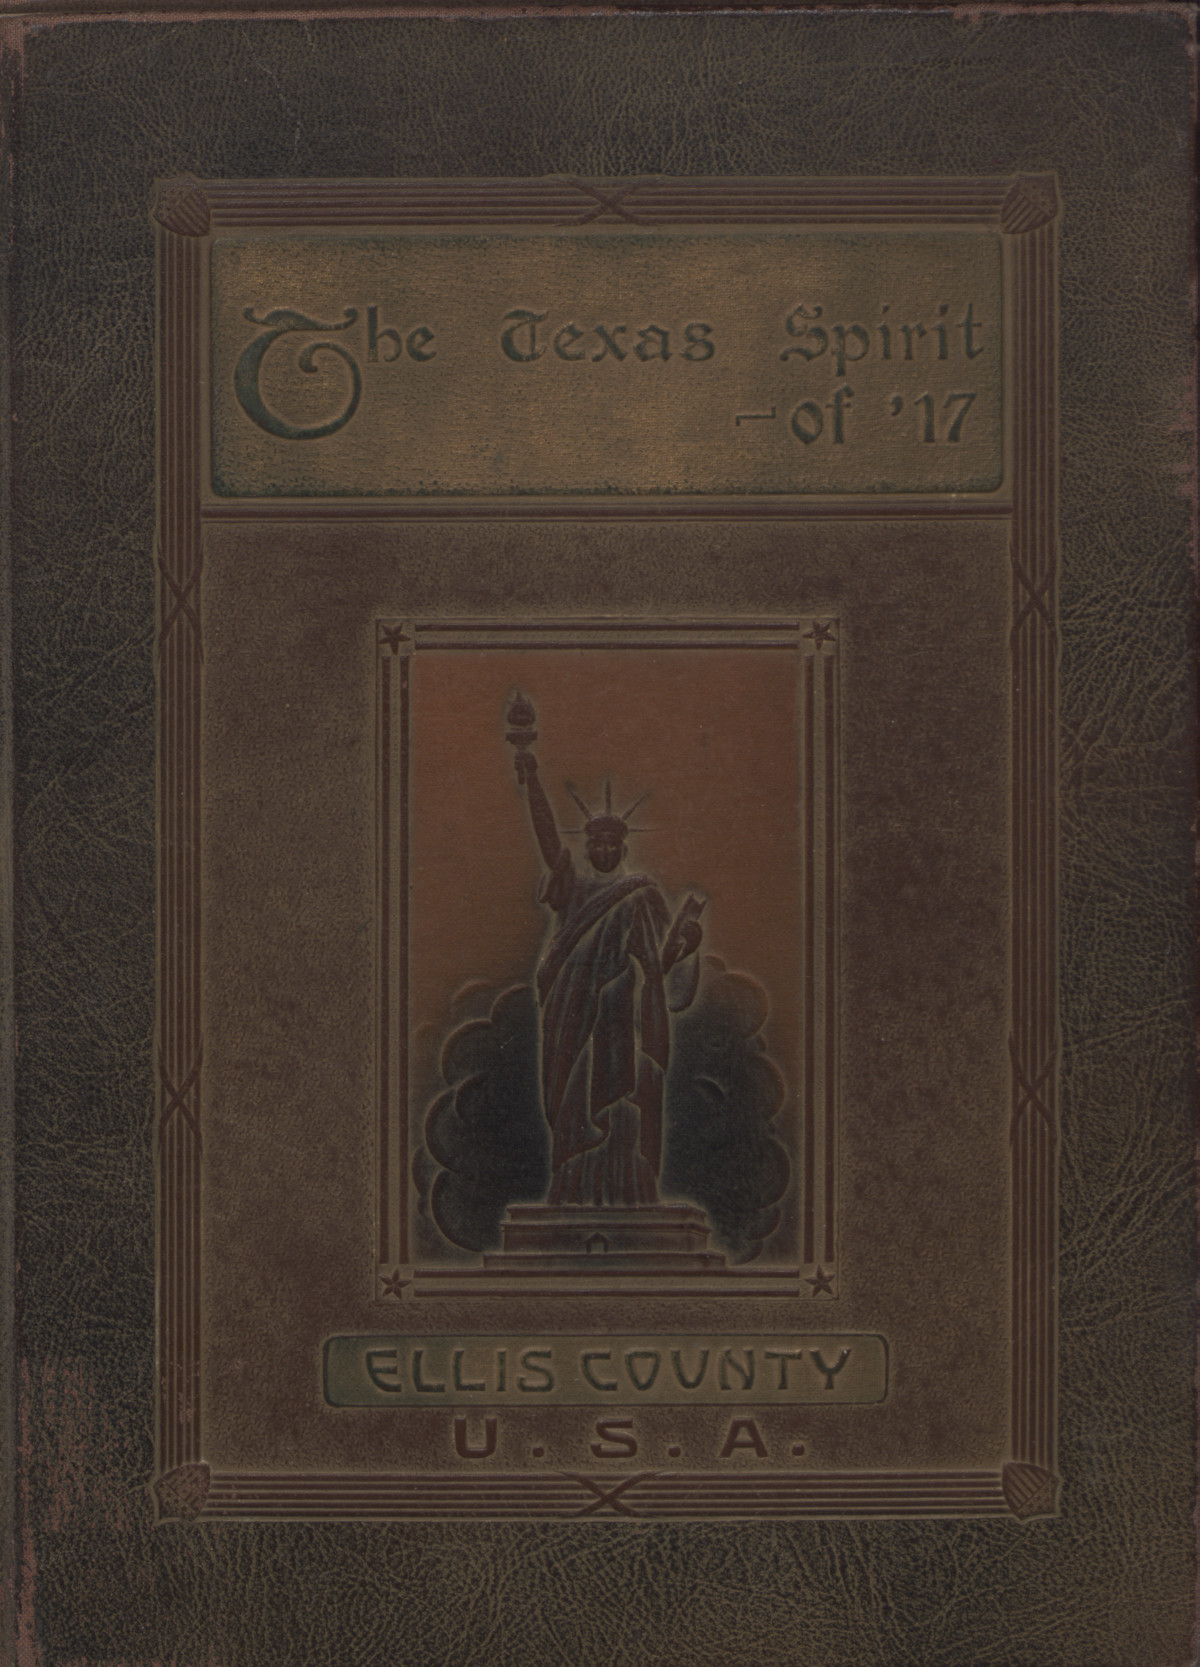 The Texas spirit of '17: a pictorial and biographical record of the gallant and courageous men from Ellis County who served in the Great War                                                                                                      [Sequence #]: 1 of 177